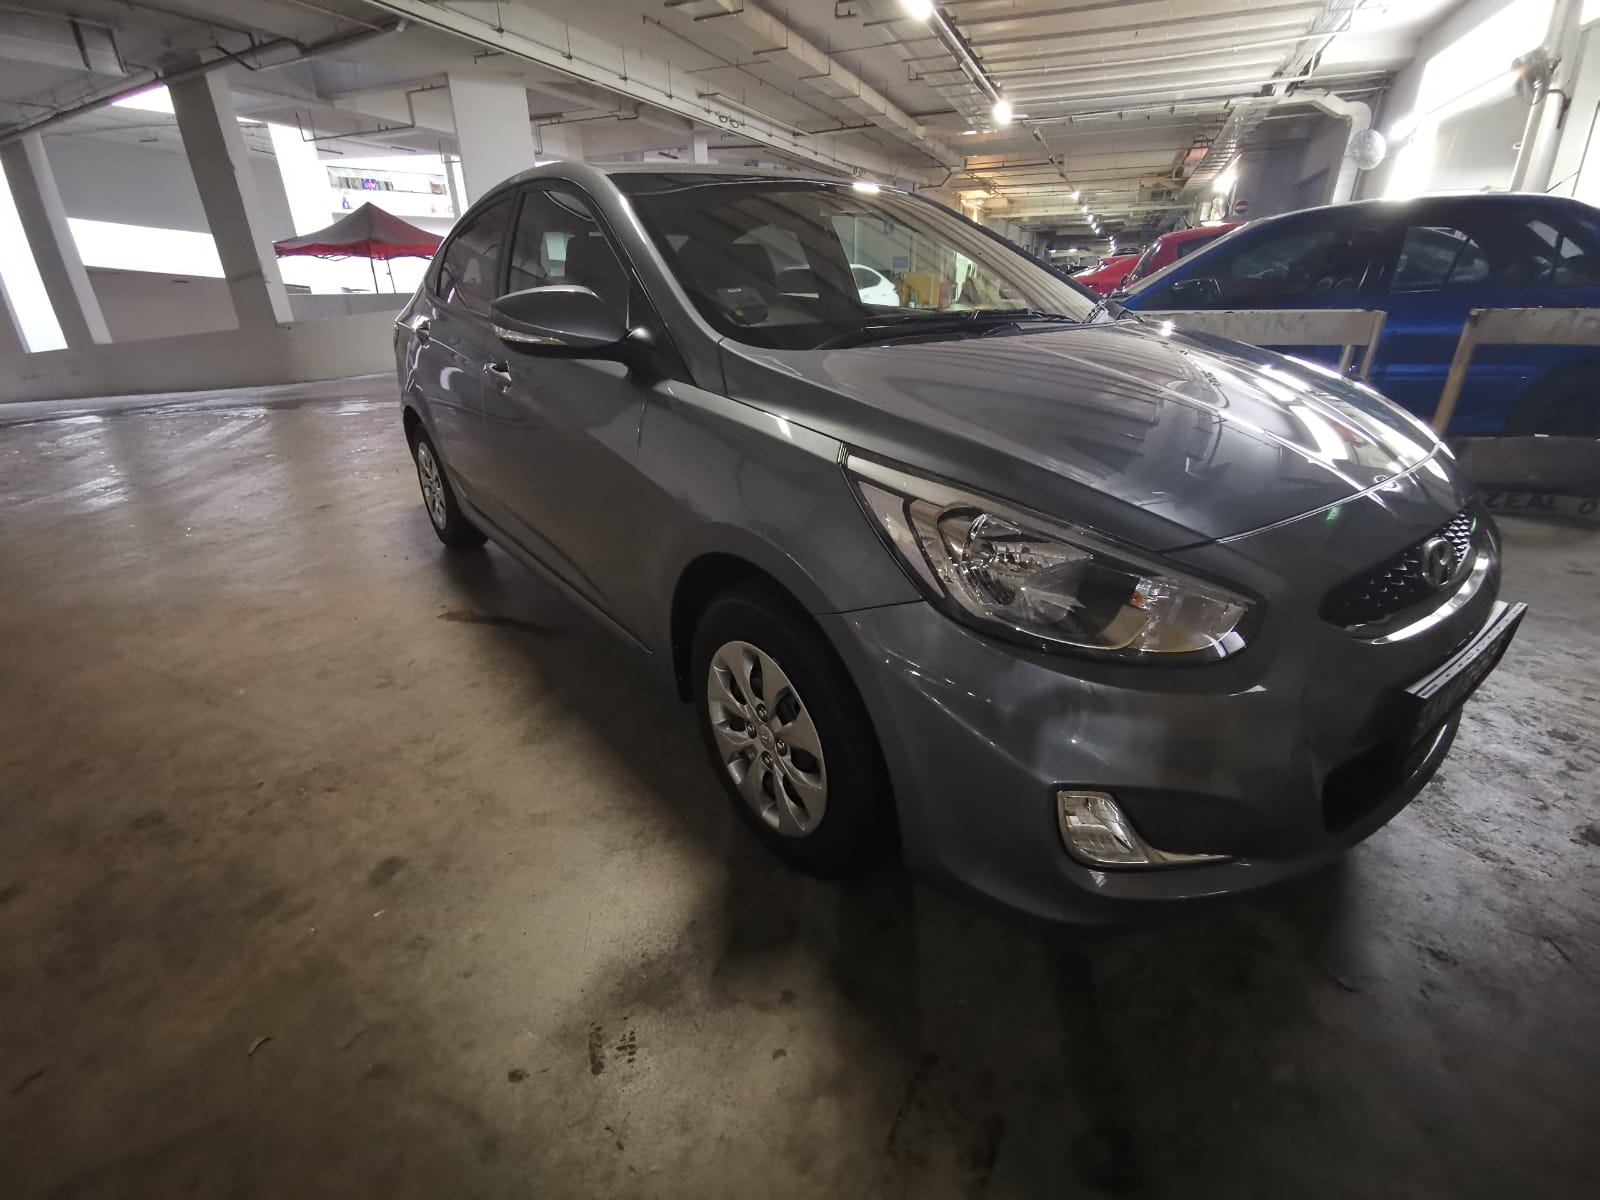 Hyundai Accent [Silver] (For Rent)